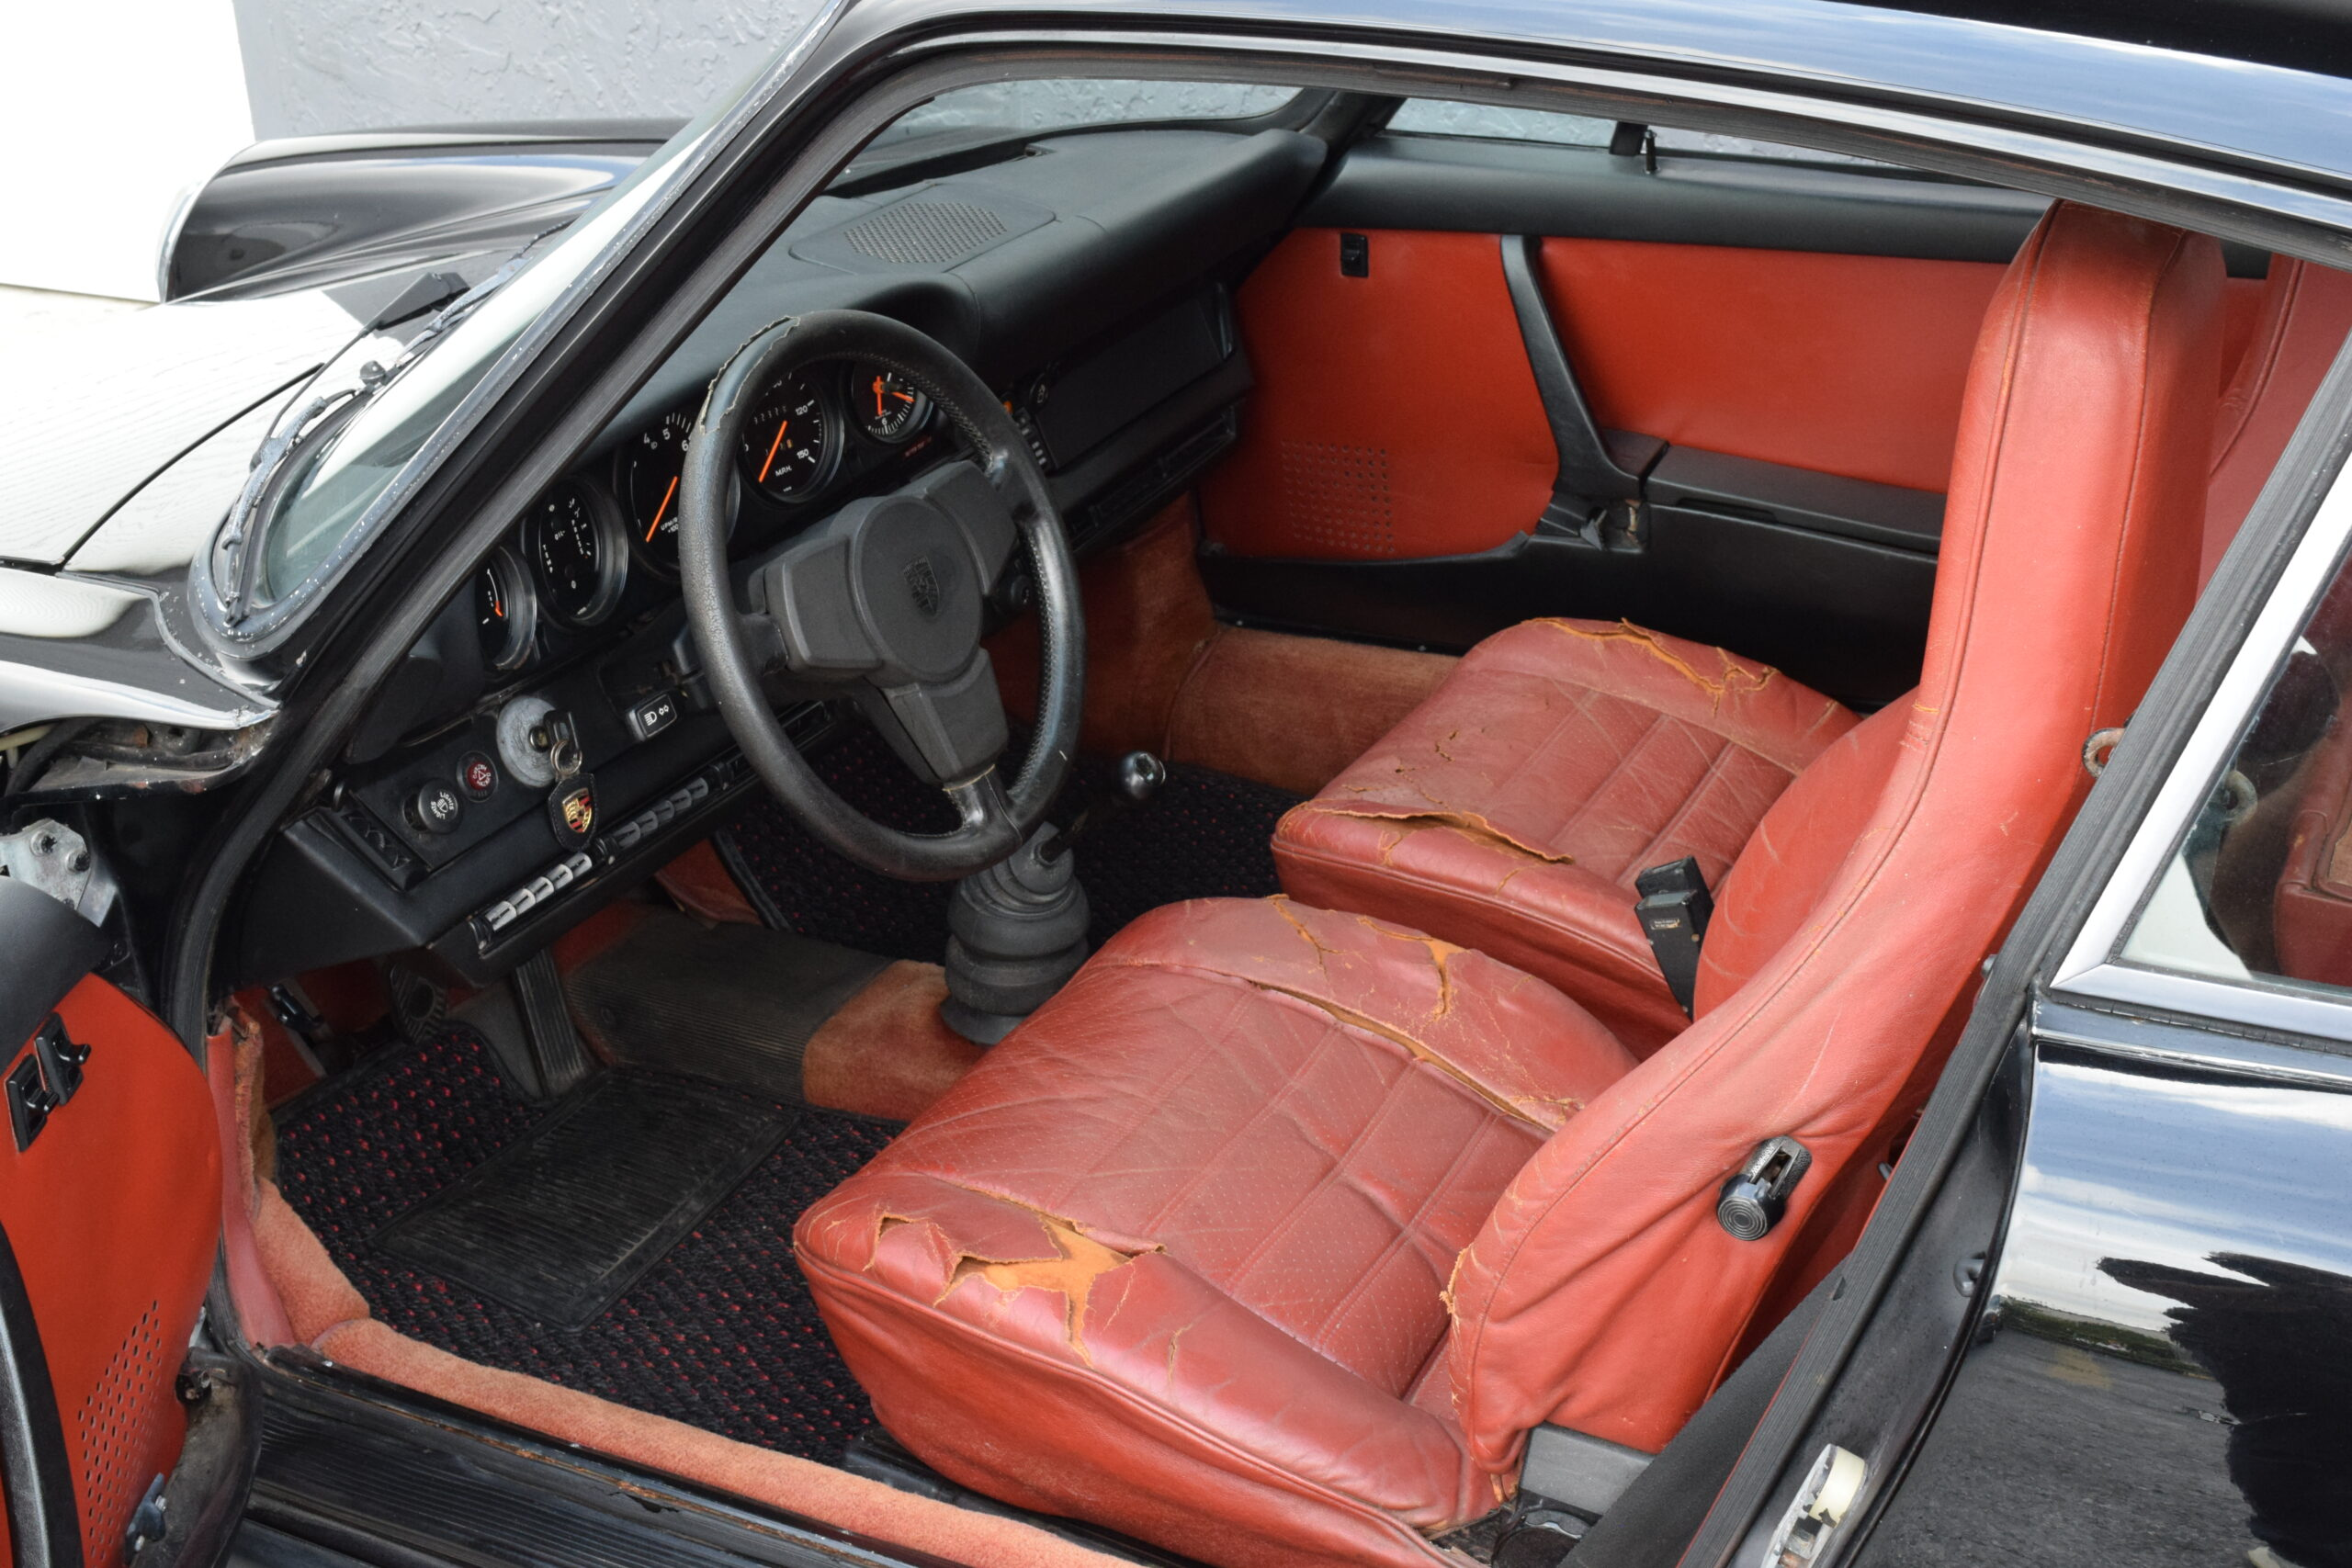 1974 911 Sunroof Carrera US, one of just 518 made, Barn Find, Original interior, Carrera Ducktail, original Manuals and Tools